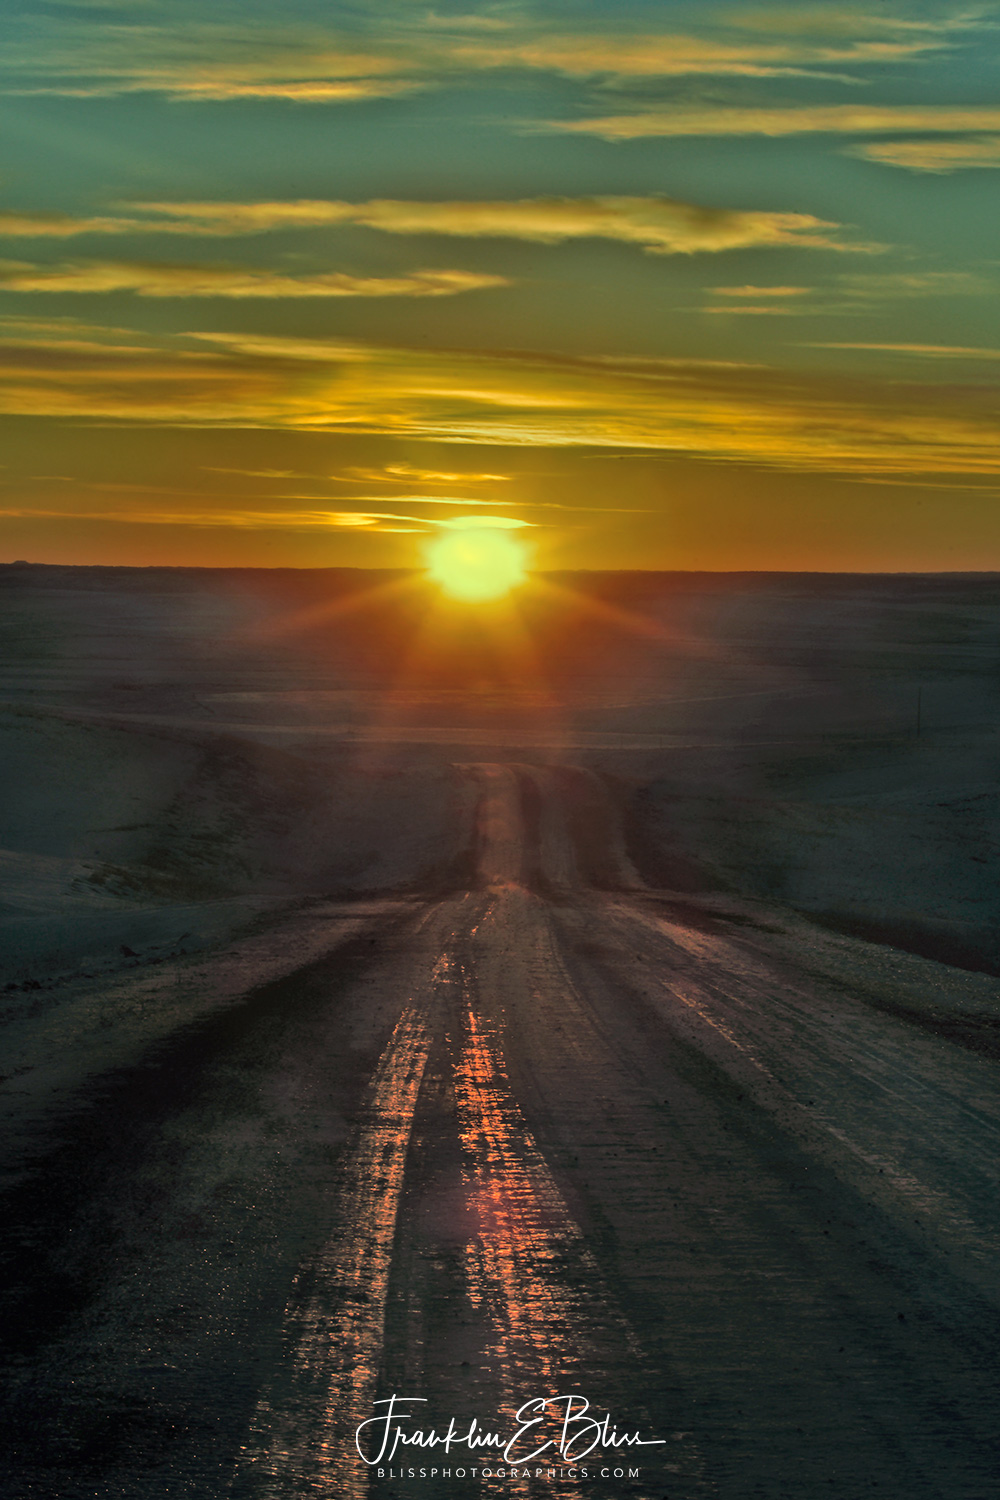 Driving into the Sunset: Backroads of Wyotana